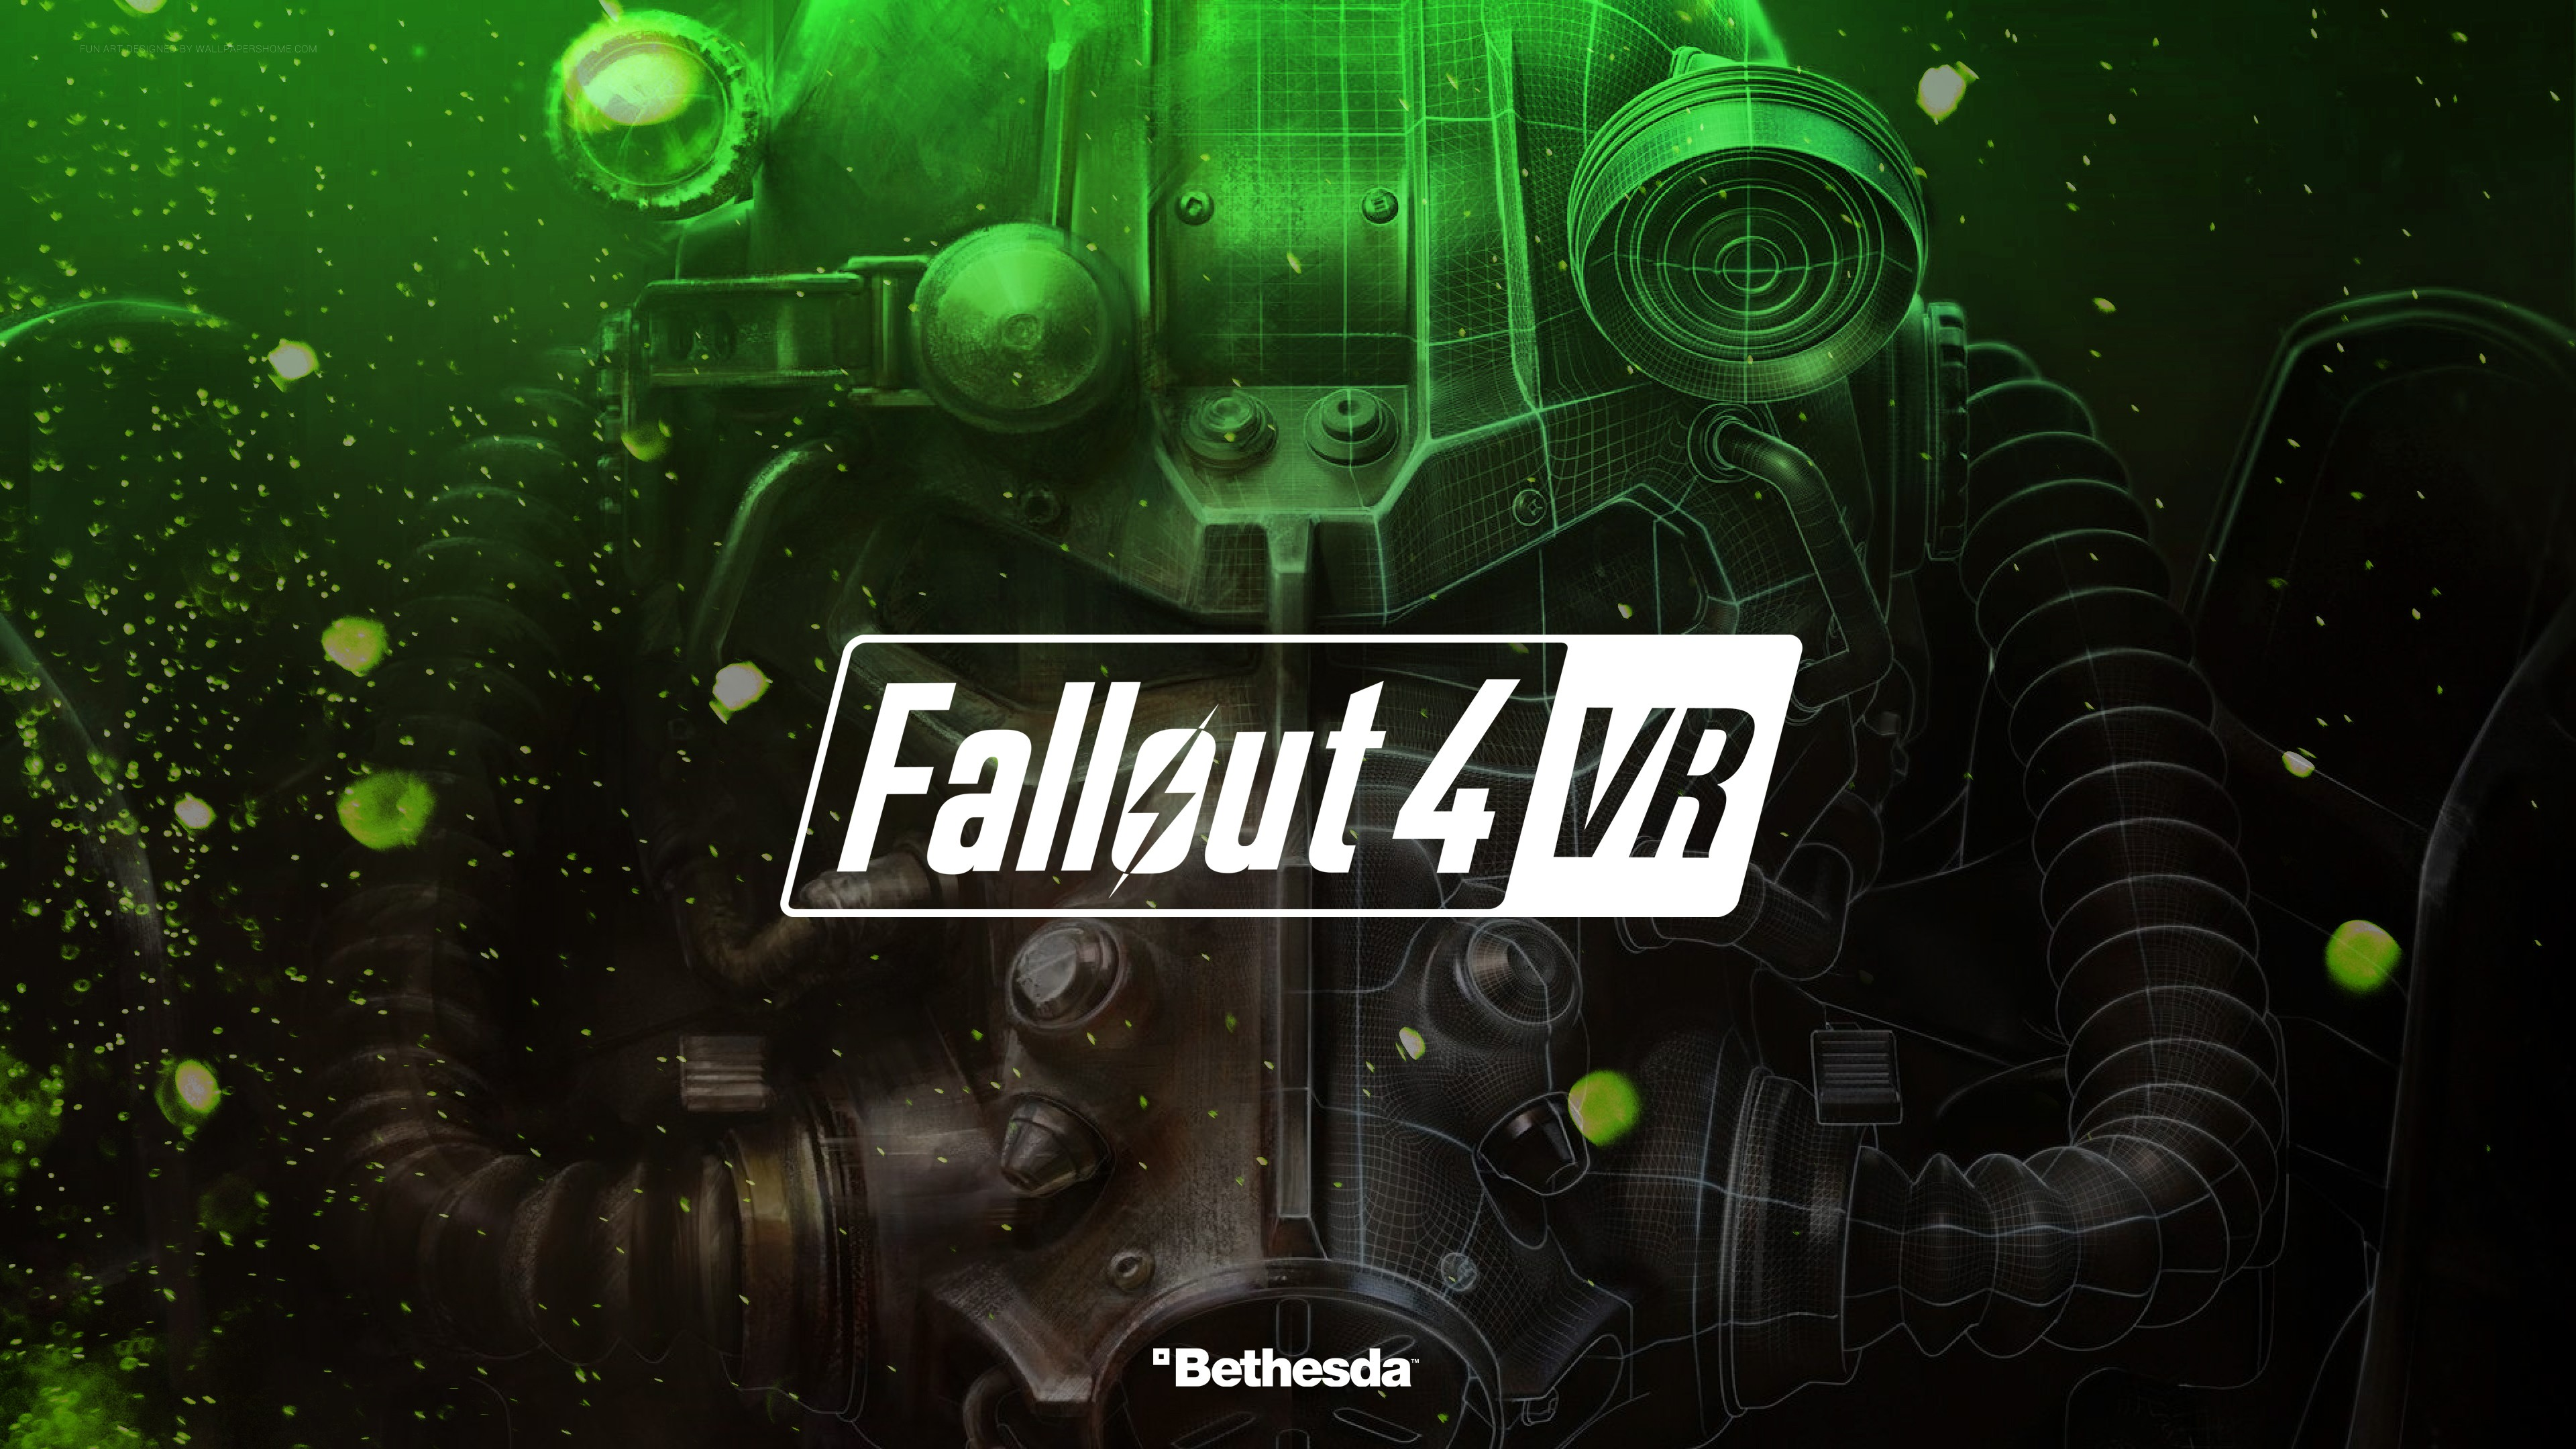 Wallpaper Fallout 4 Vr 4k E3 2017 Games 13727